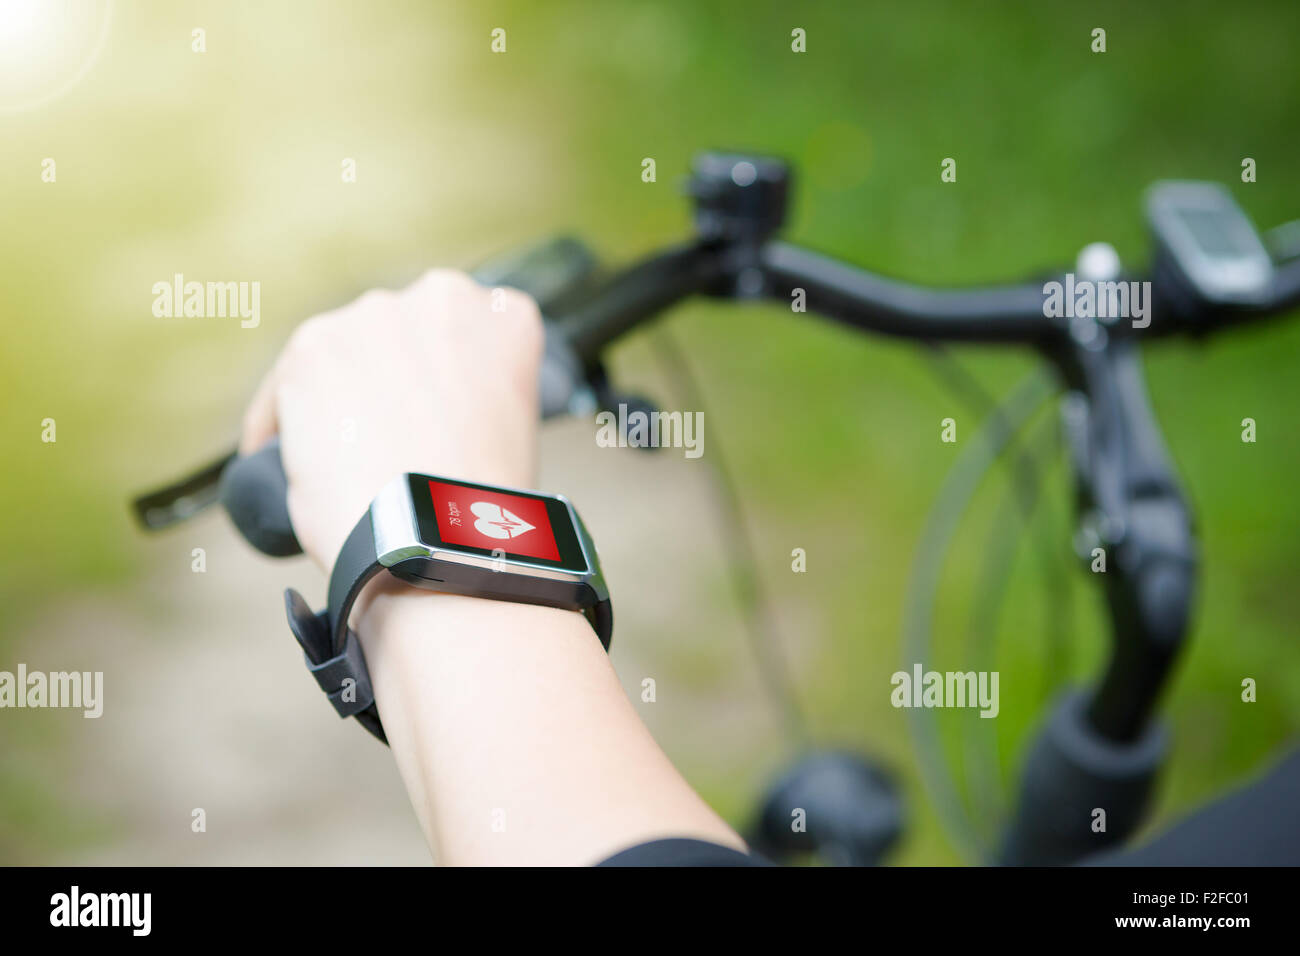 Woman riding a bike with a smartwatch heart rate monitor. Smart watch concept. - Stock Image